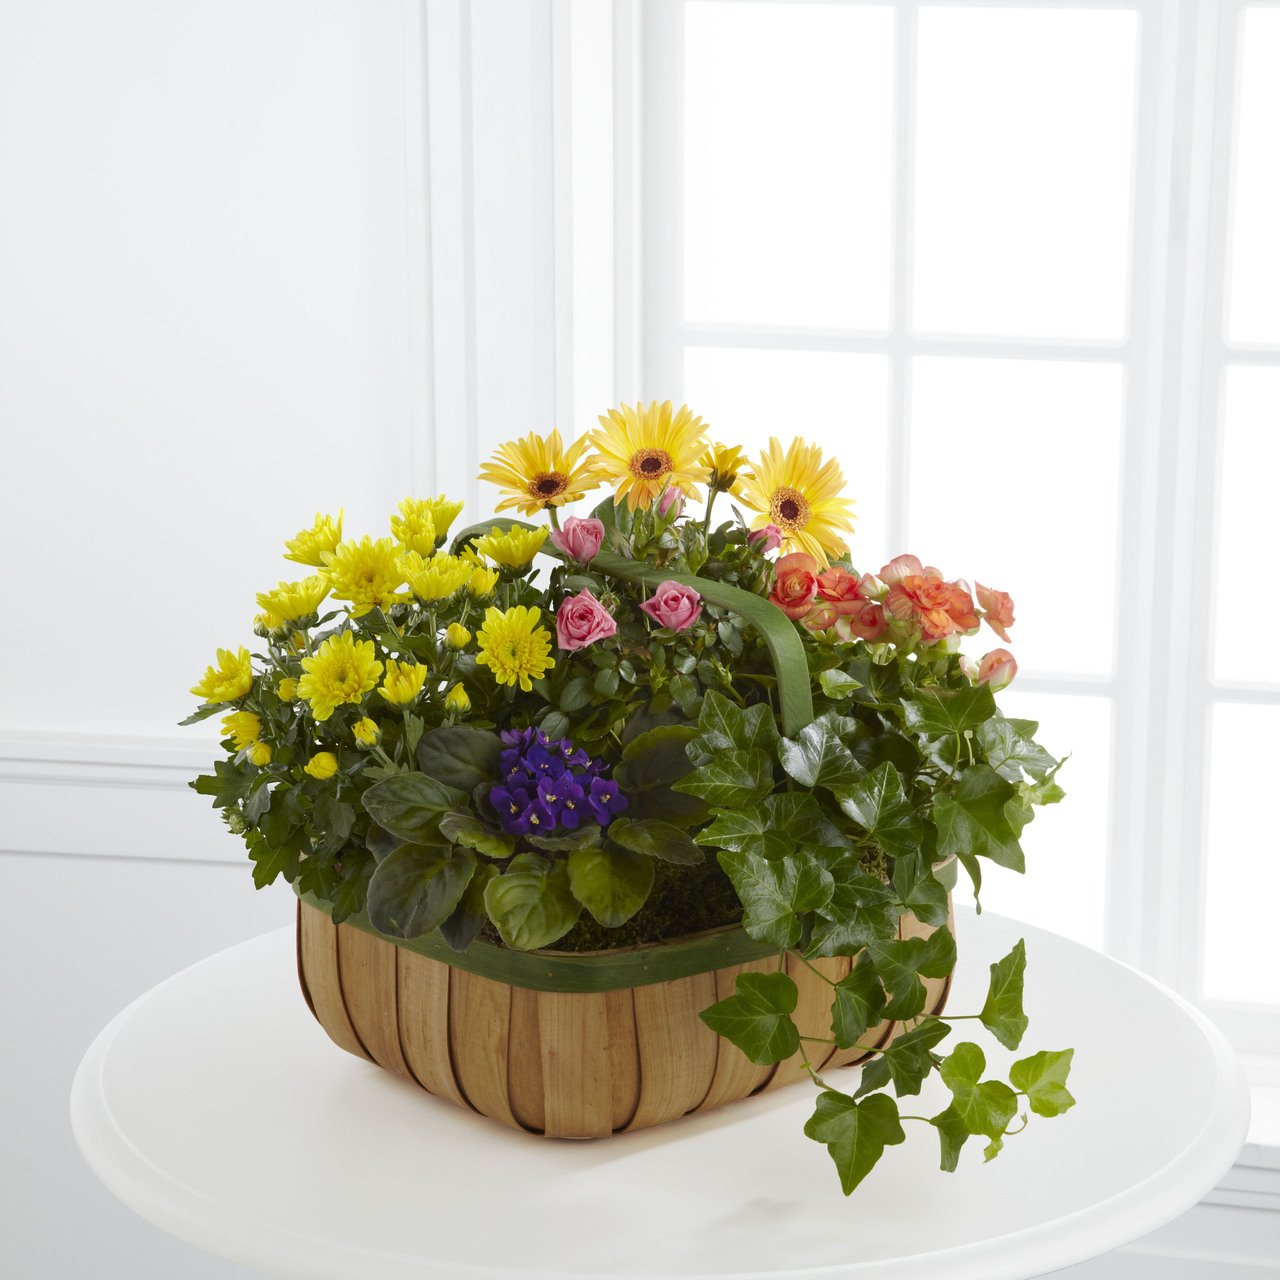 Gentle Blossoms Basket - Fresh Flowers Hand Delivered in Albuquerque Area